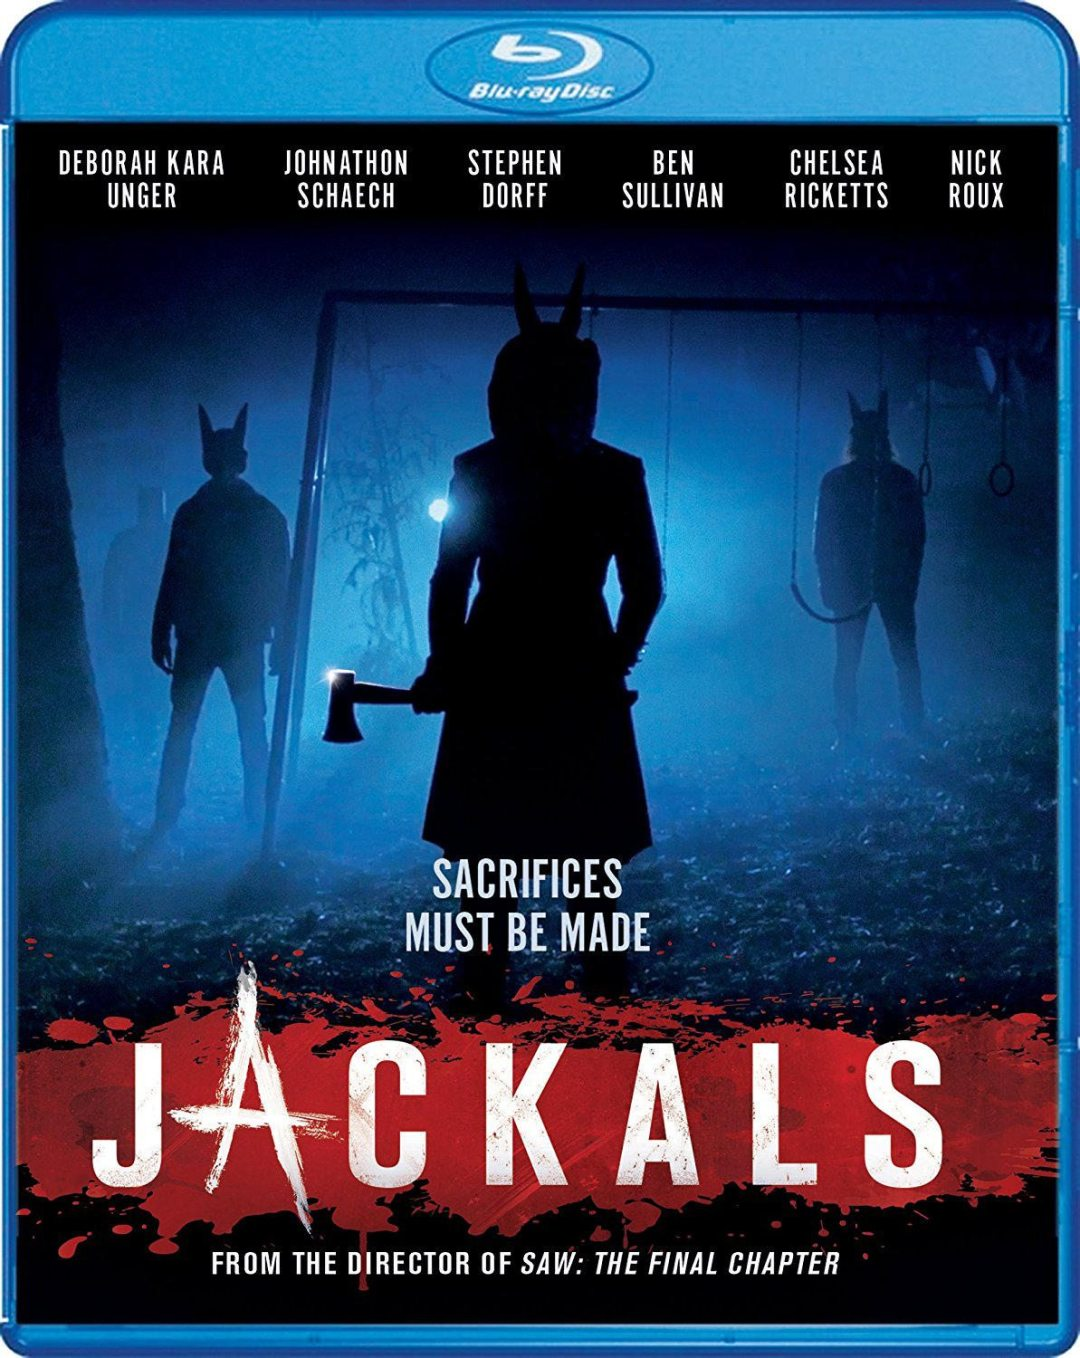 You Can Play with the 'Jackals' in October!